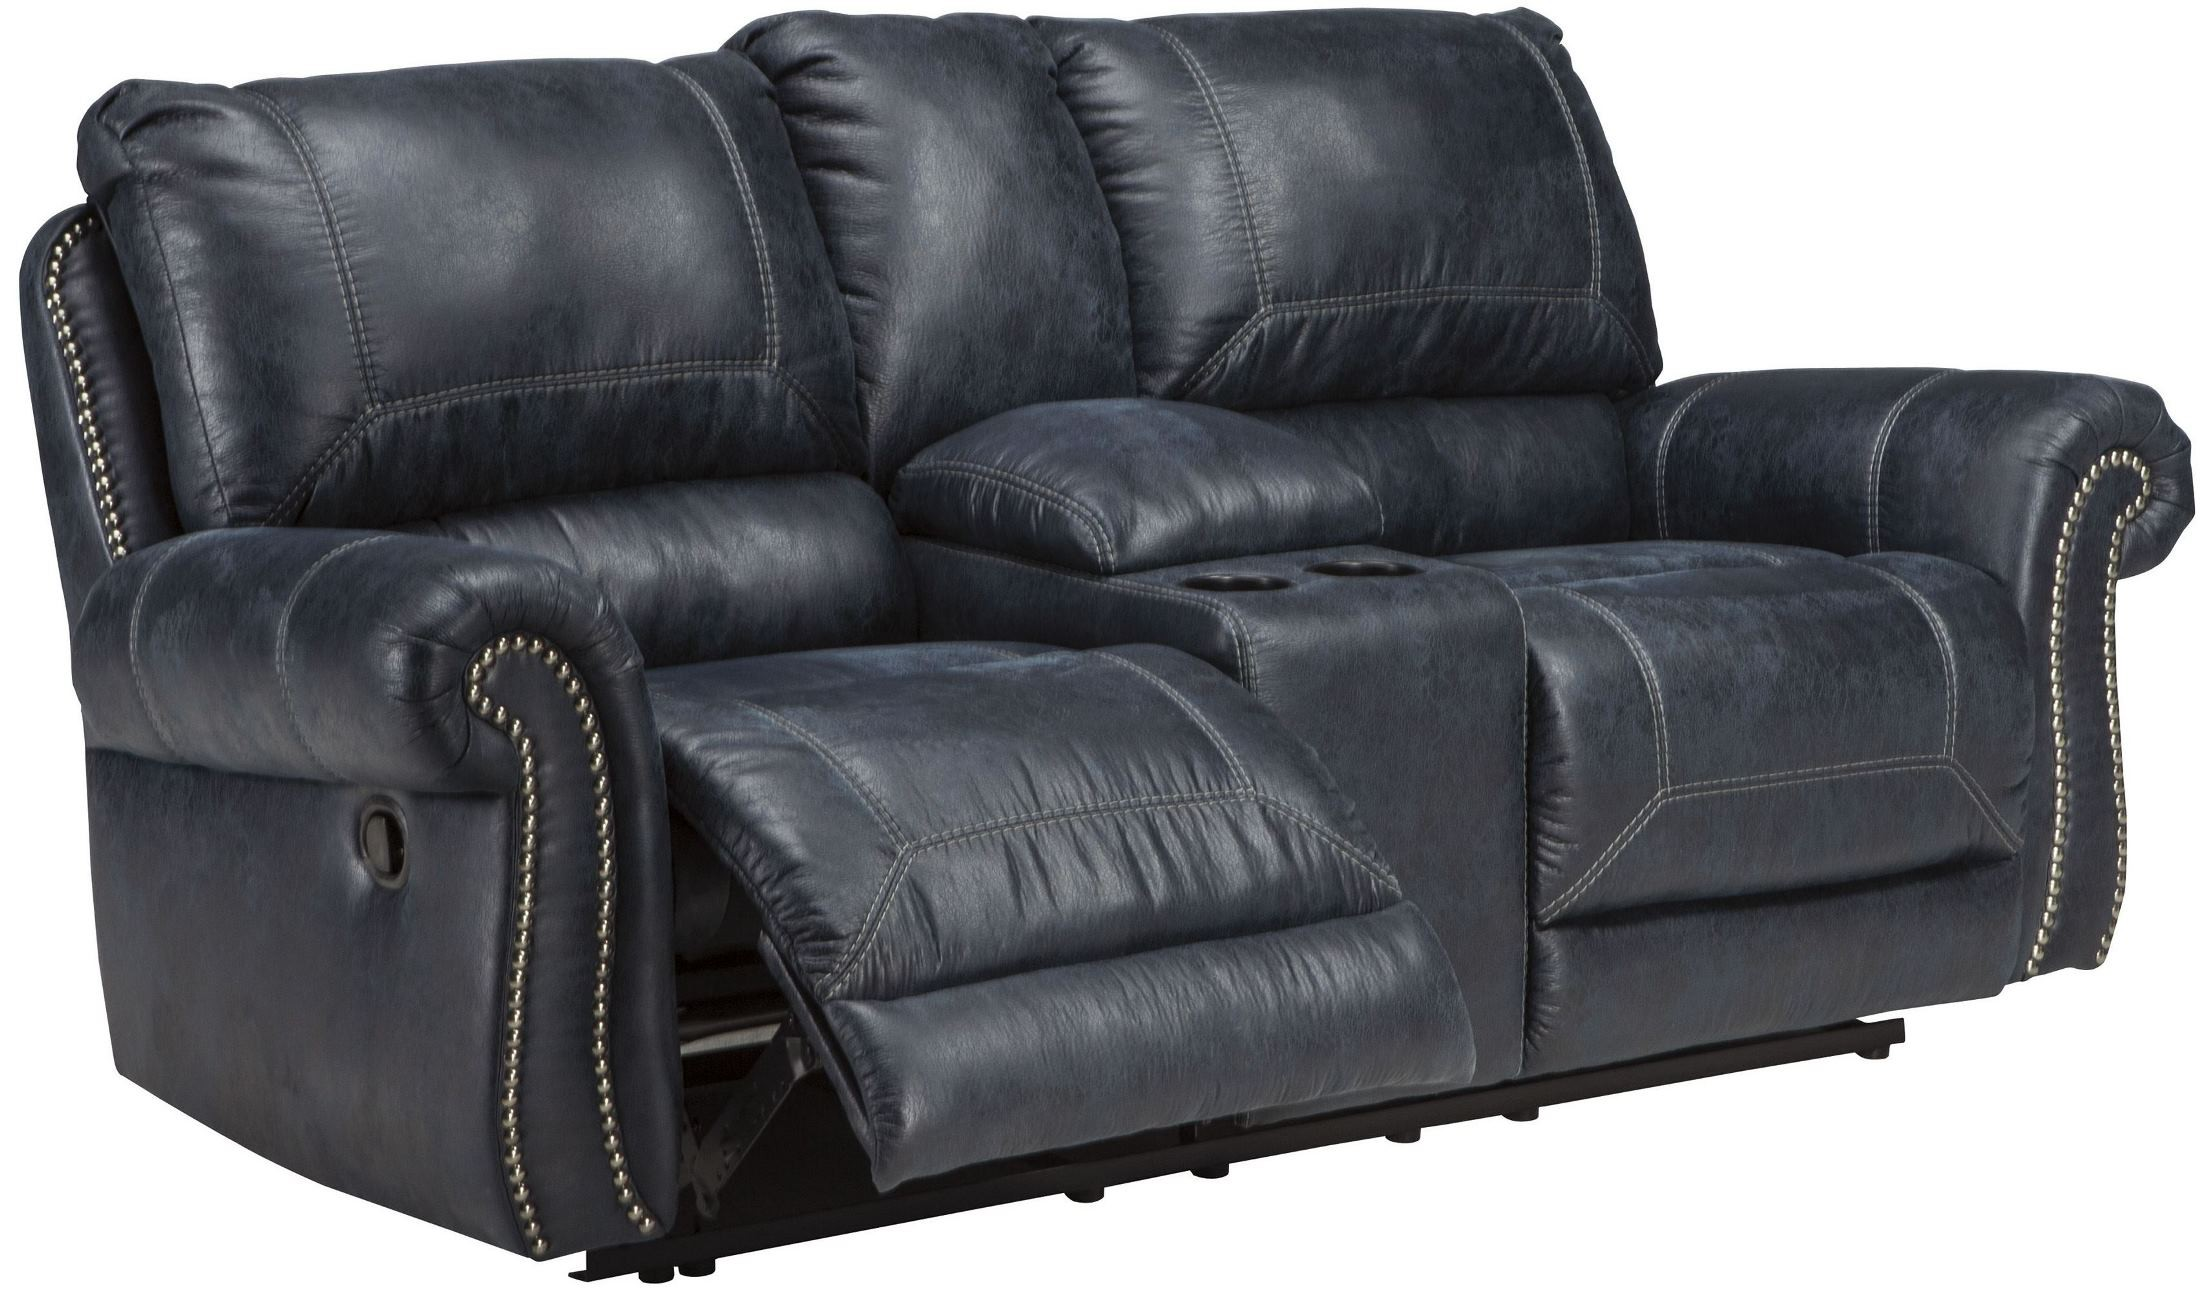 Milhaven Navy Double Power Reclining Console Loveseat 6330496 Ashley